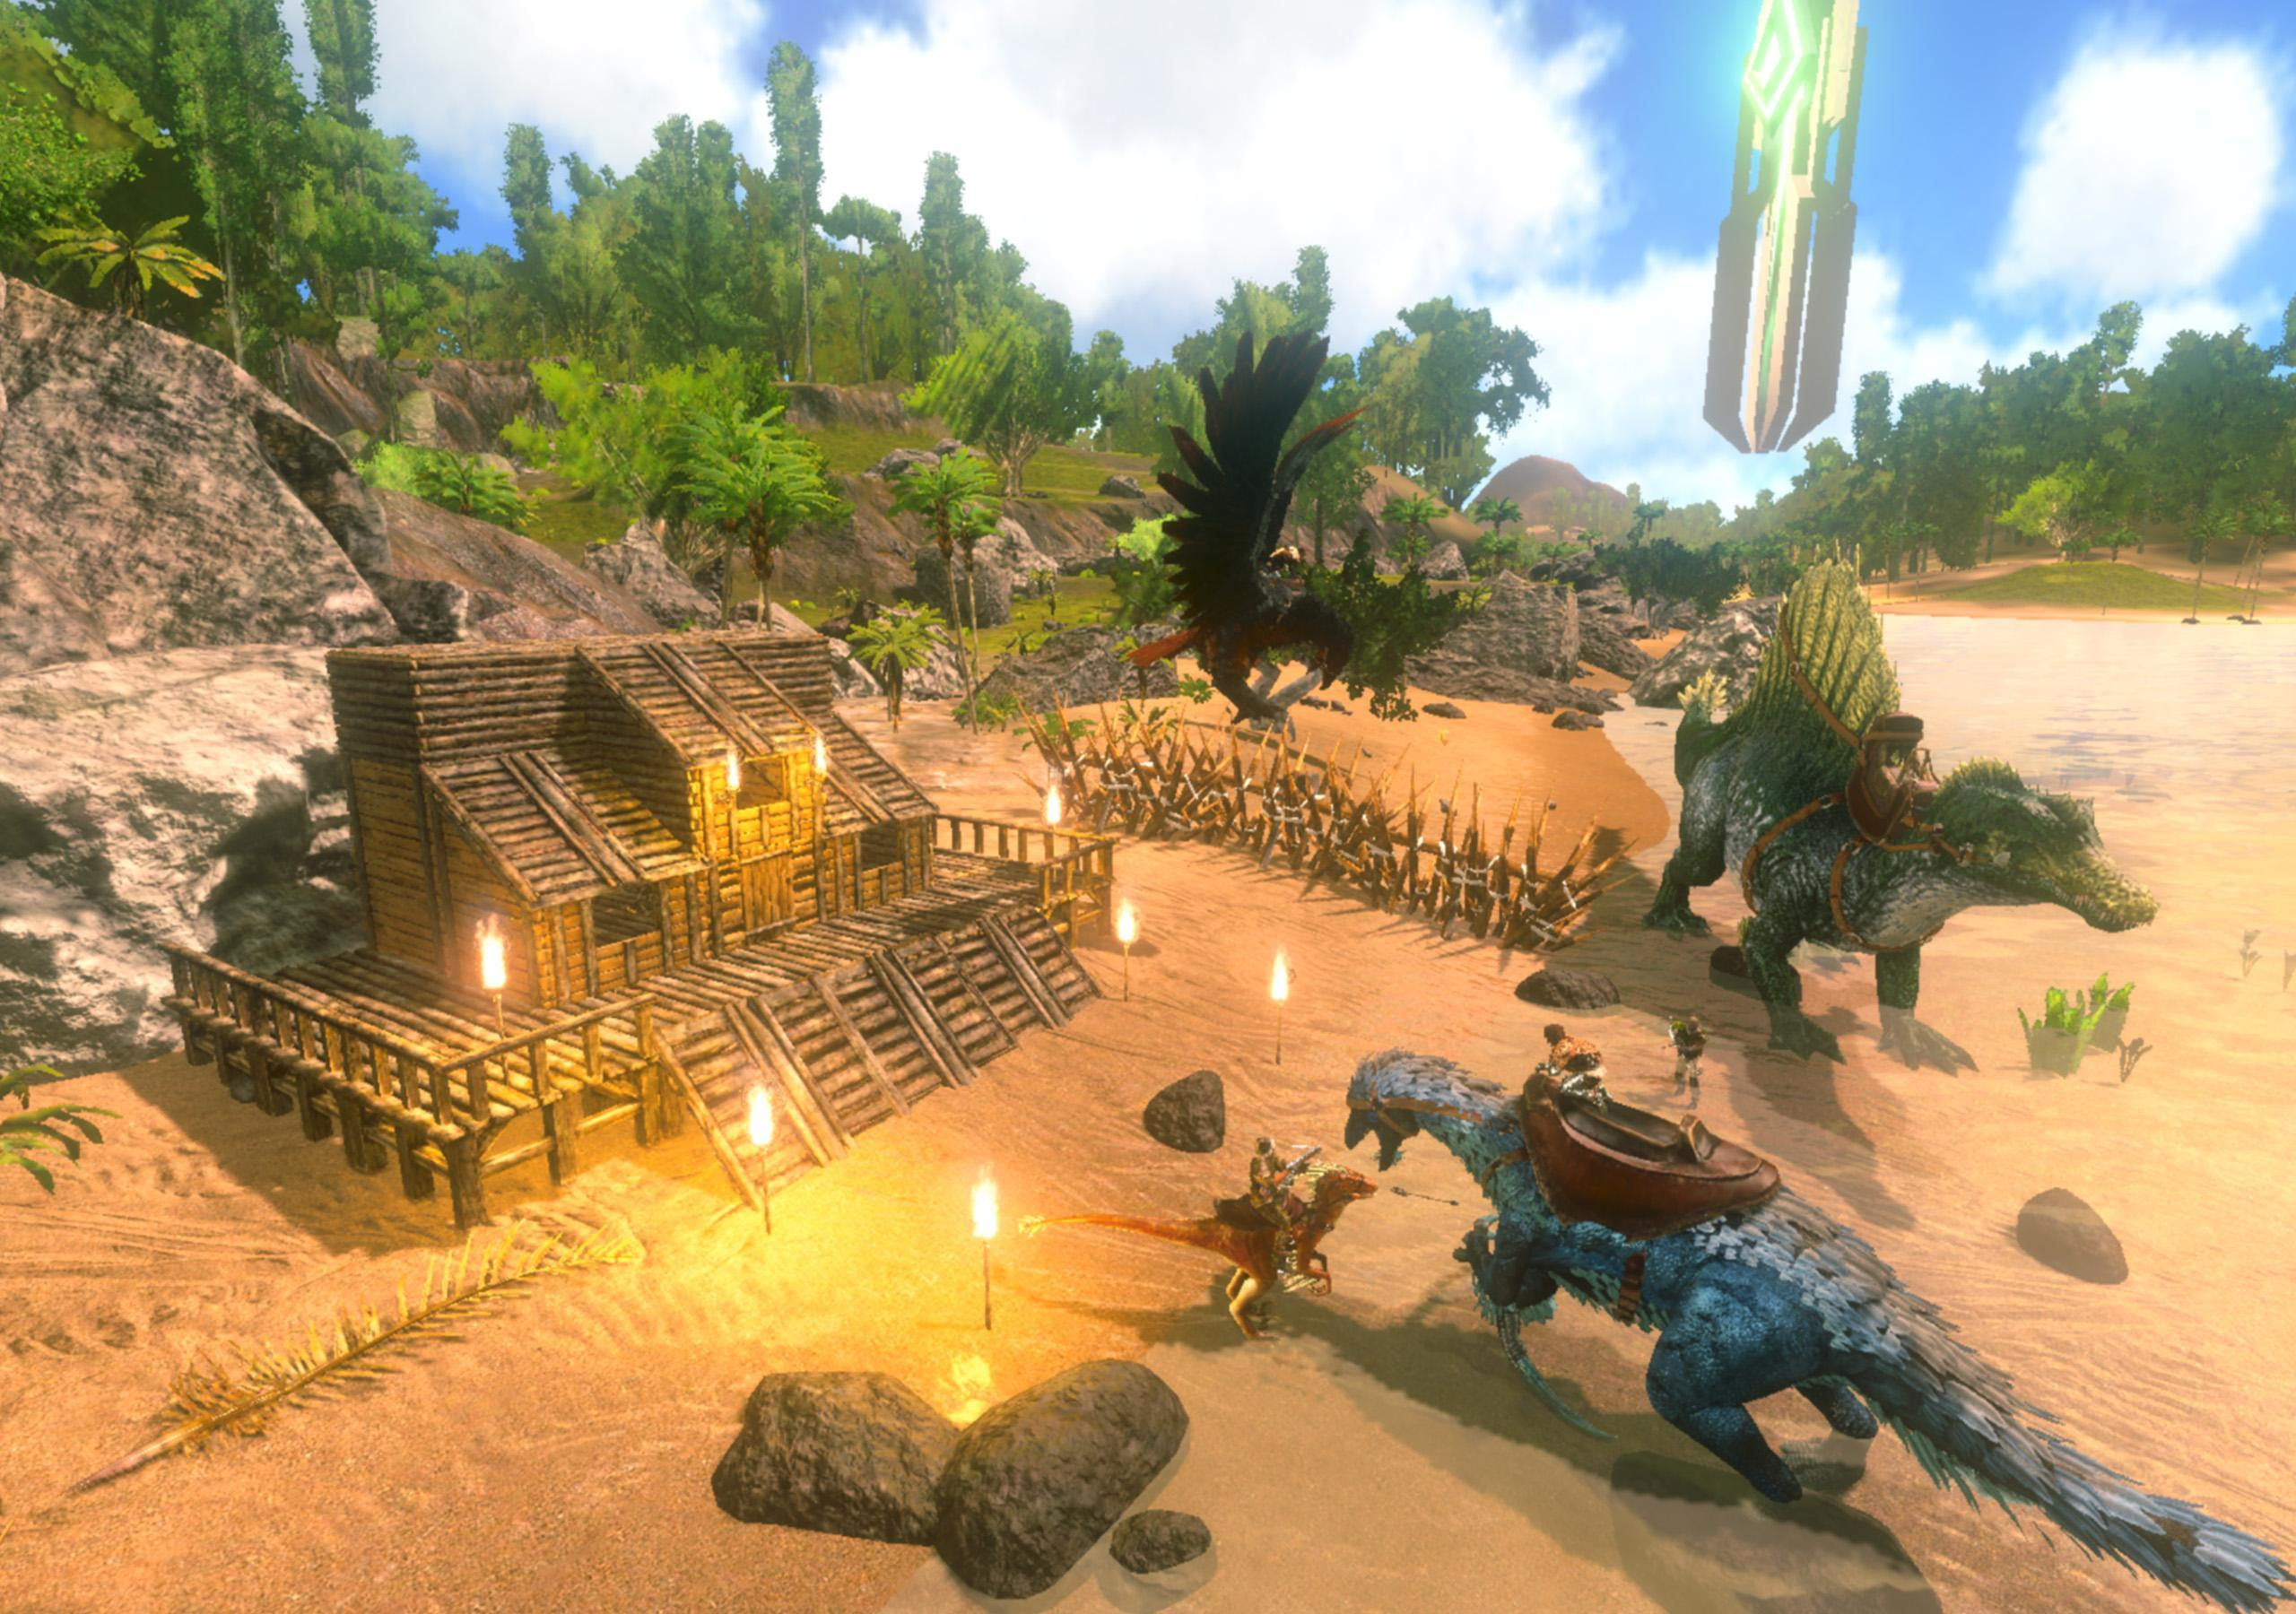 ARK: Survival Evolved for Android - APK Download